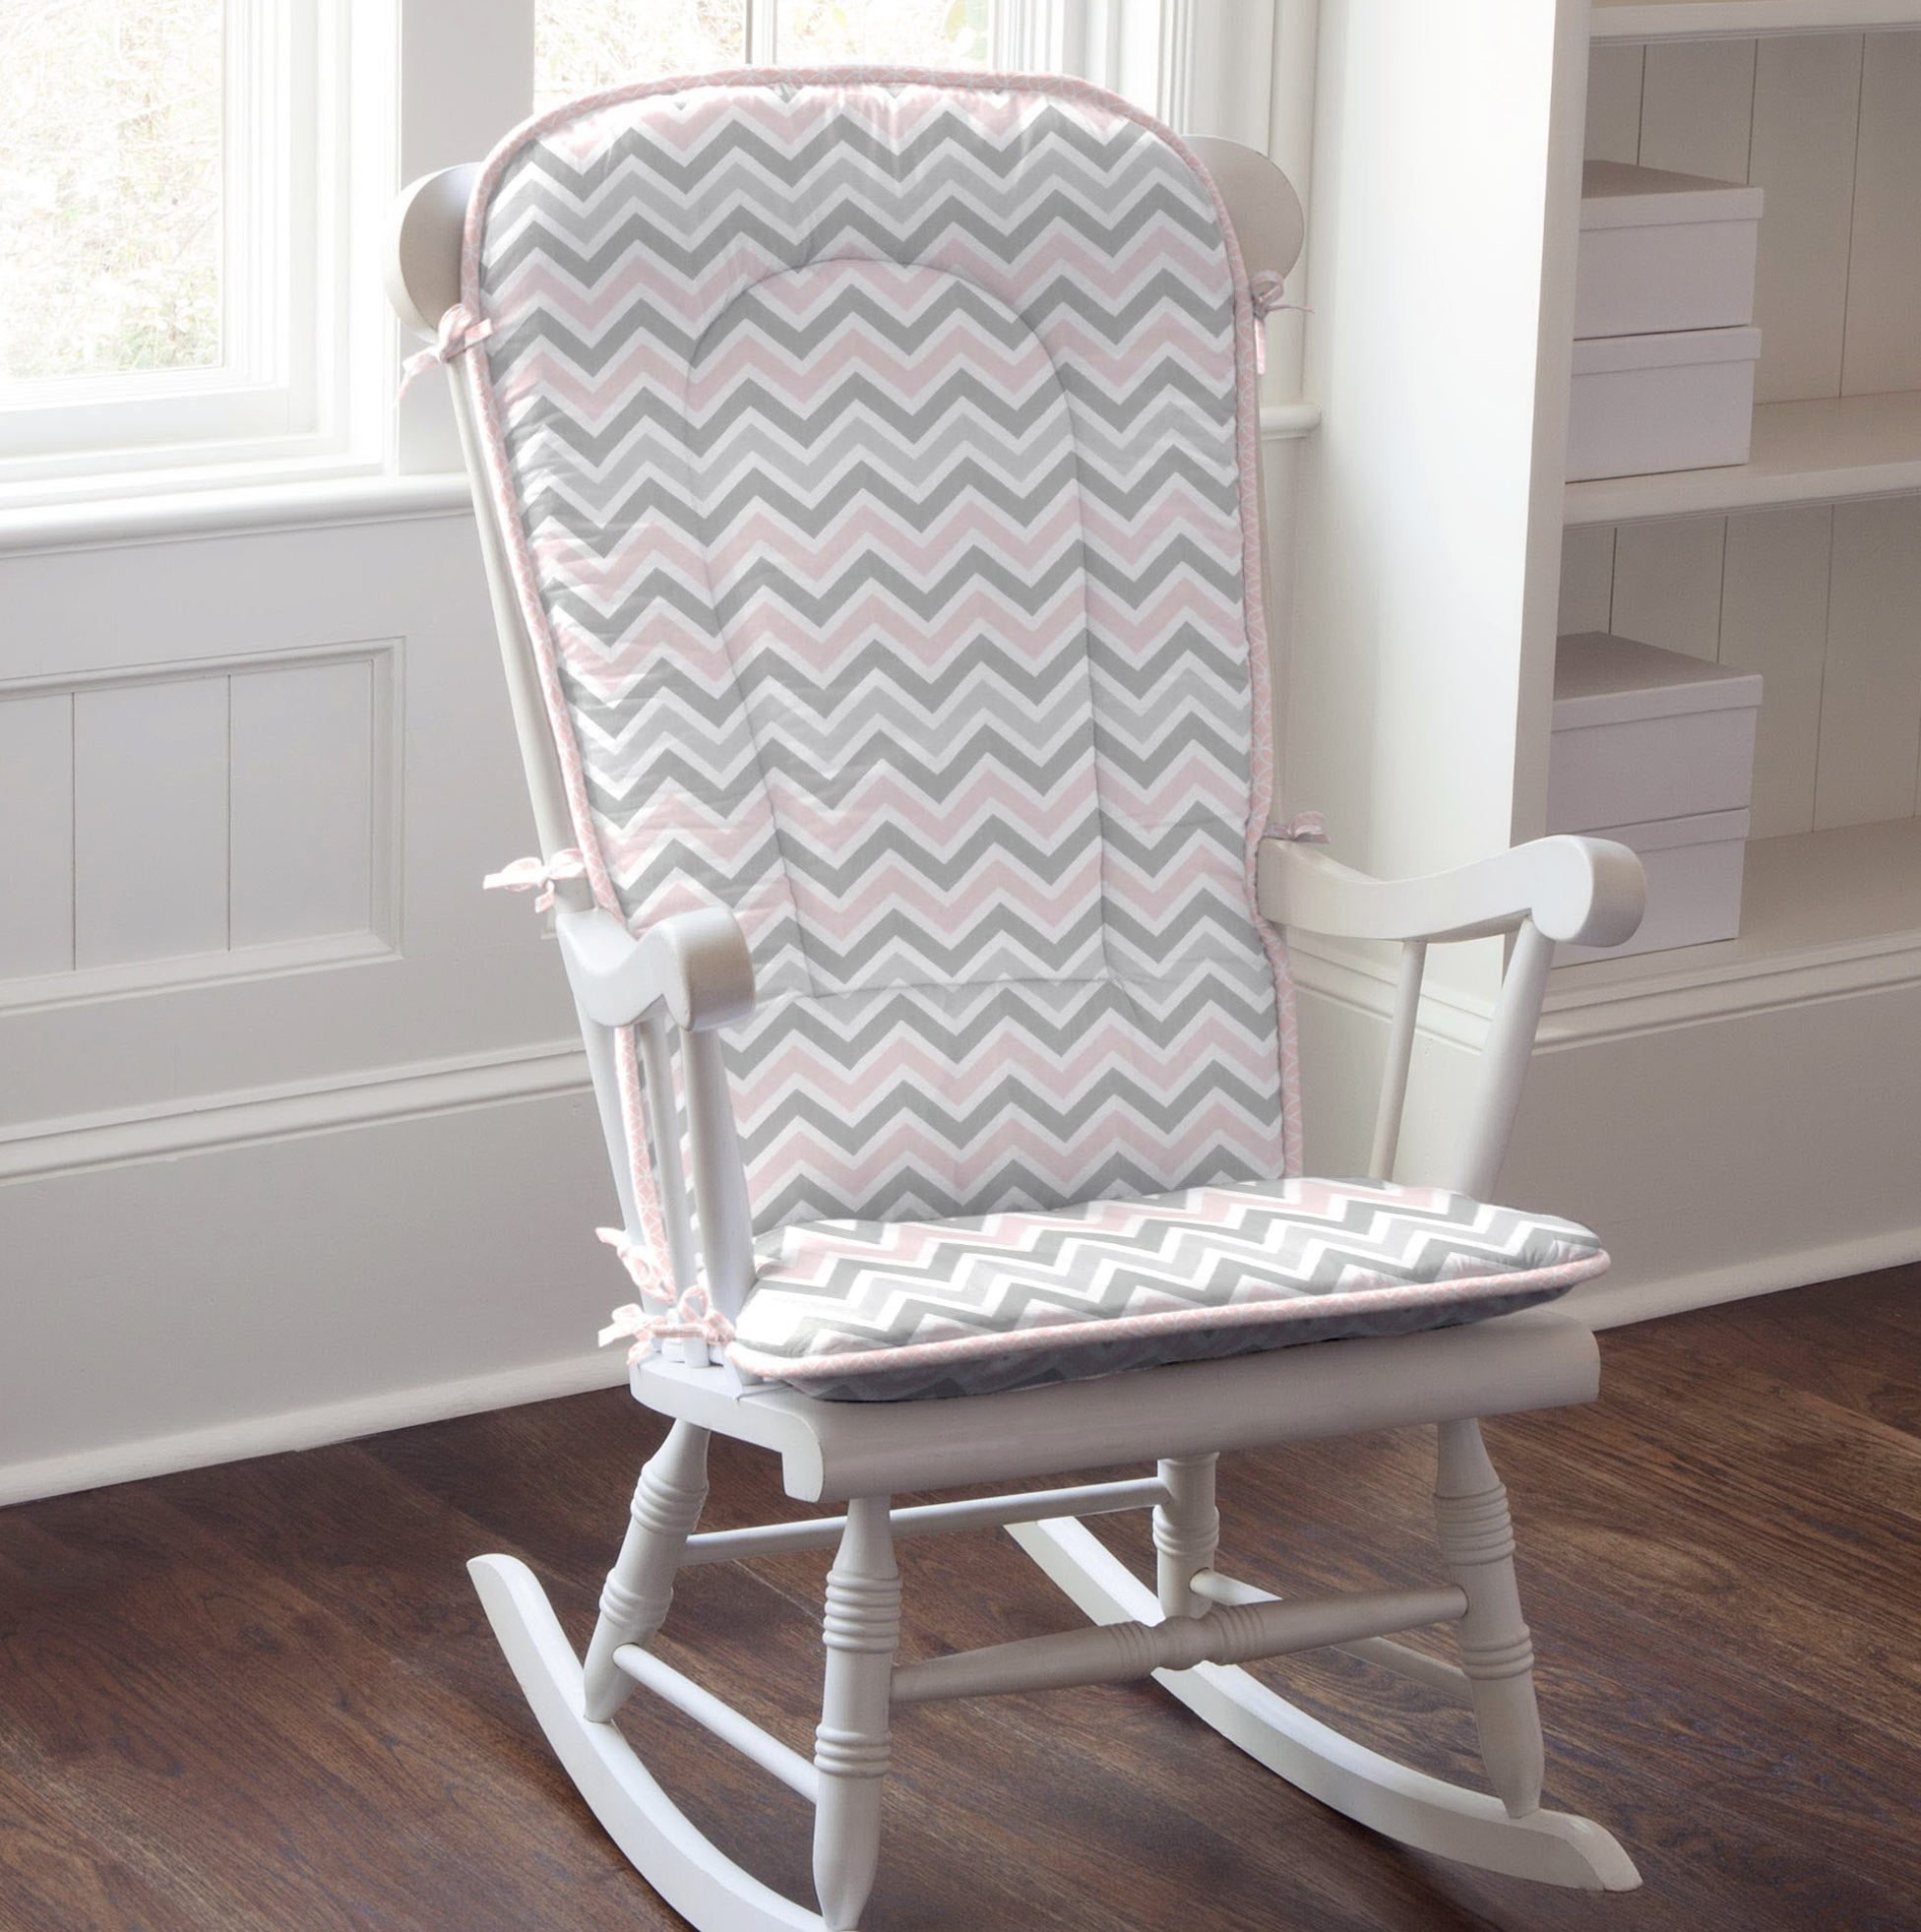 Rocking Chair Cushions Nursery | Rocking Chair Cushion Nursery | Rocking Chair Cushion